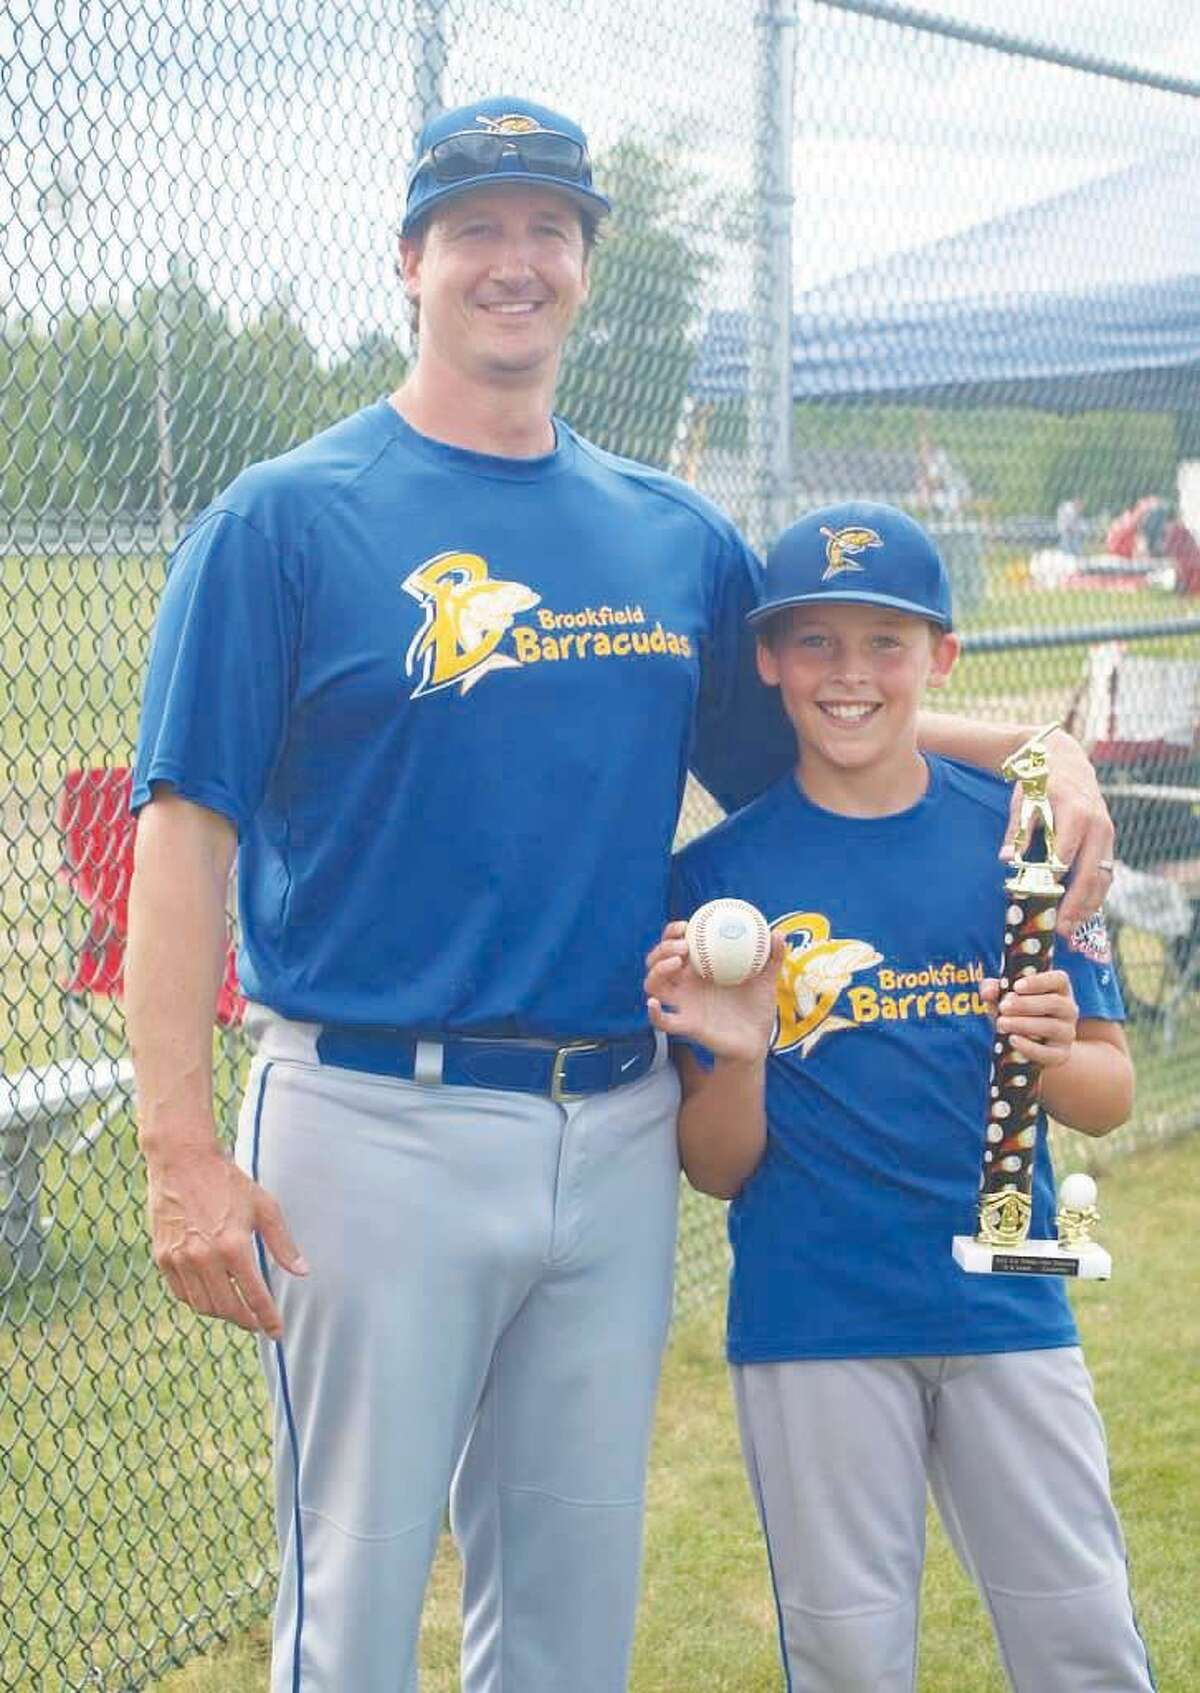 Former Norwalk High baseball standout Craig Katz, once the city's all-time hits leader, stands with his son Casey after their Brookfield Cal Ripken 10 year-old all-star team won the New England Regionals. (Contributed photo)